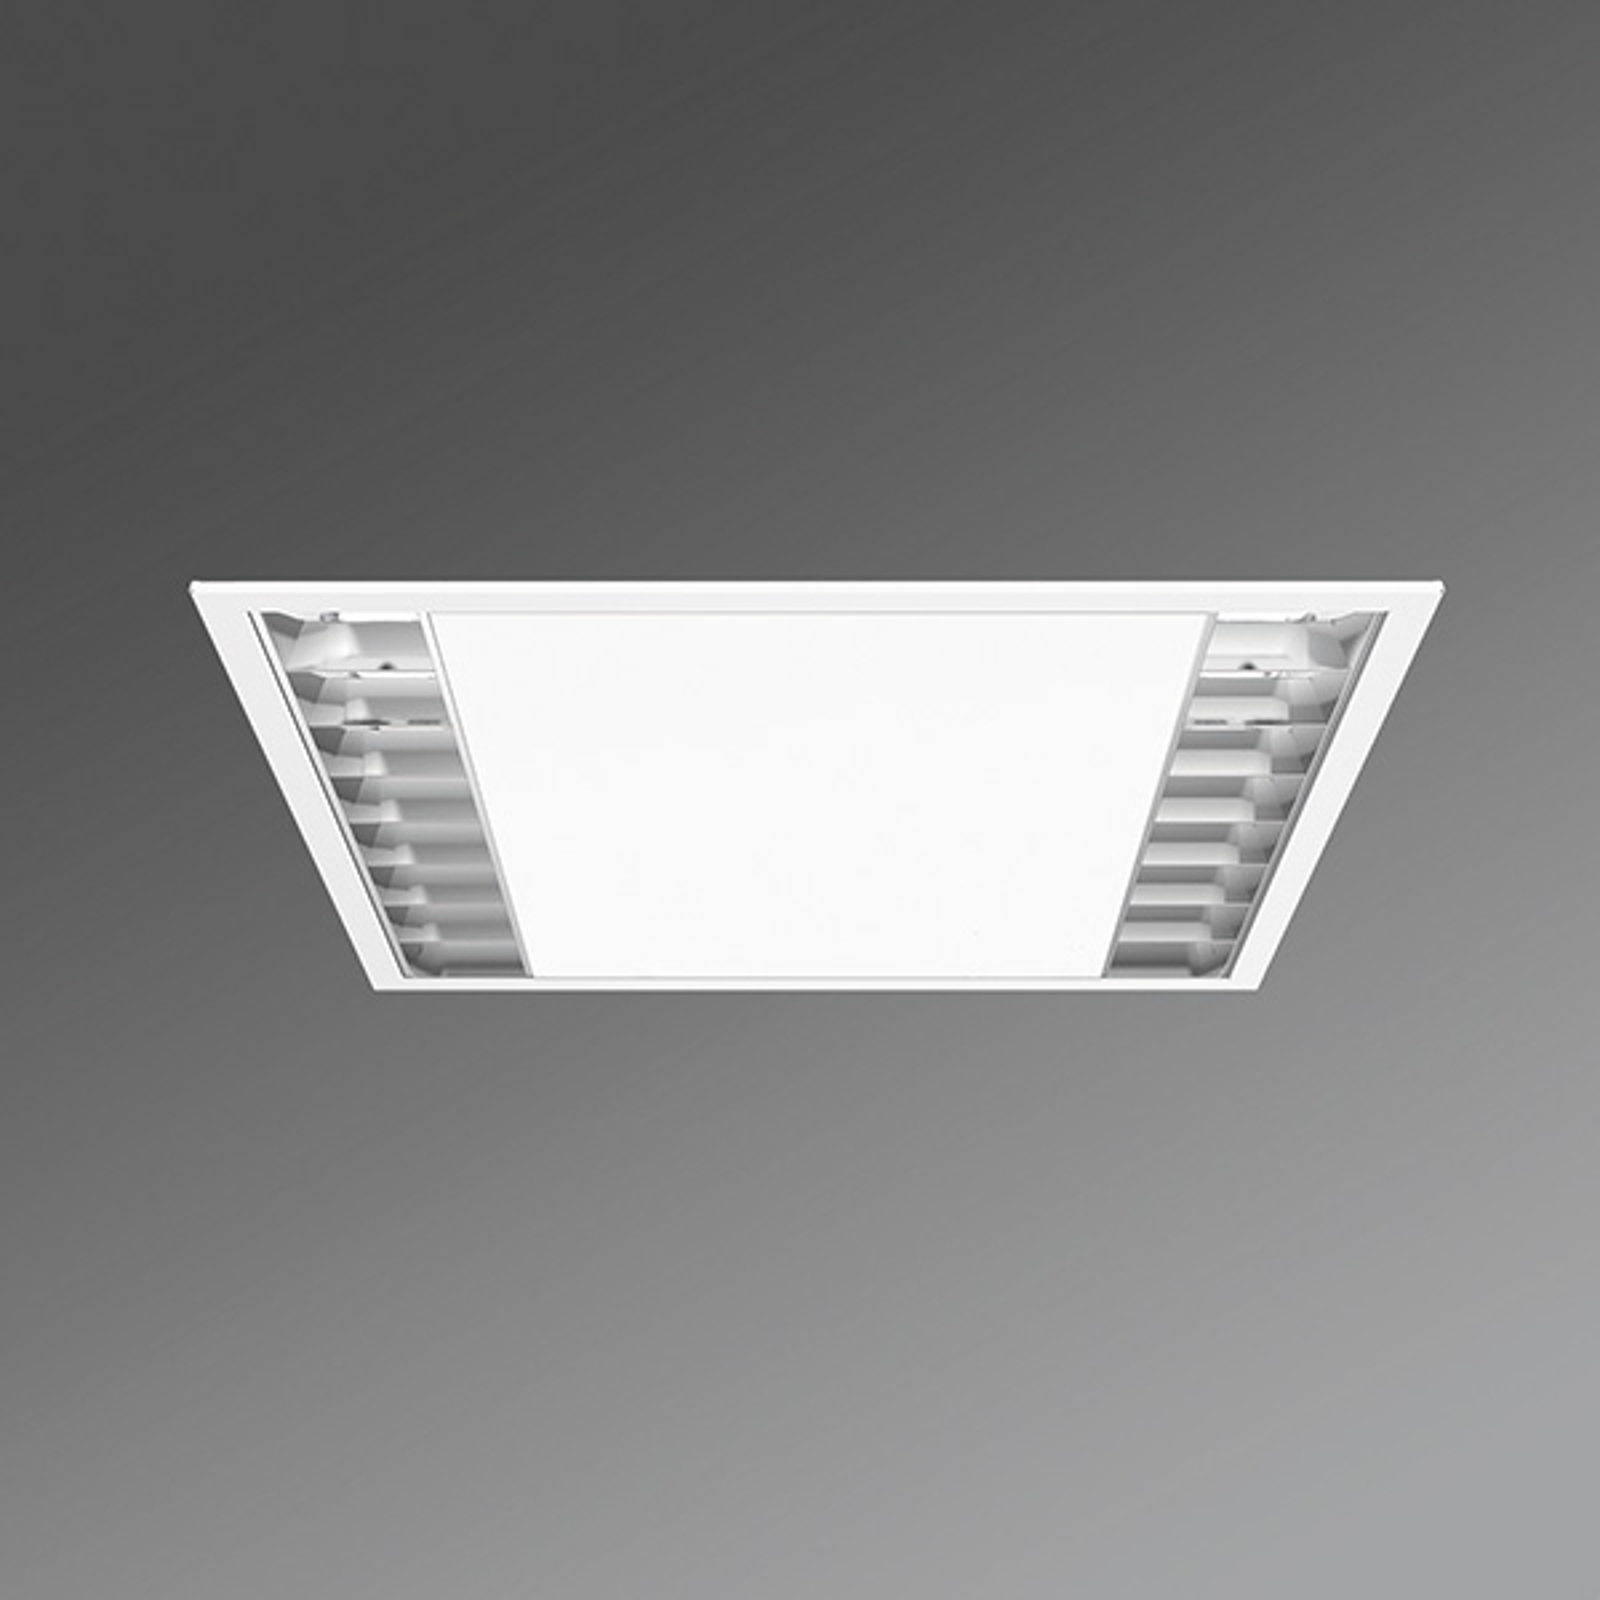 UEX/625 LED office downlight parabolic louvre_8035075_1